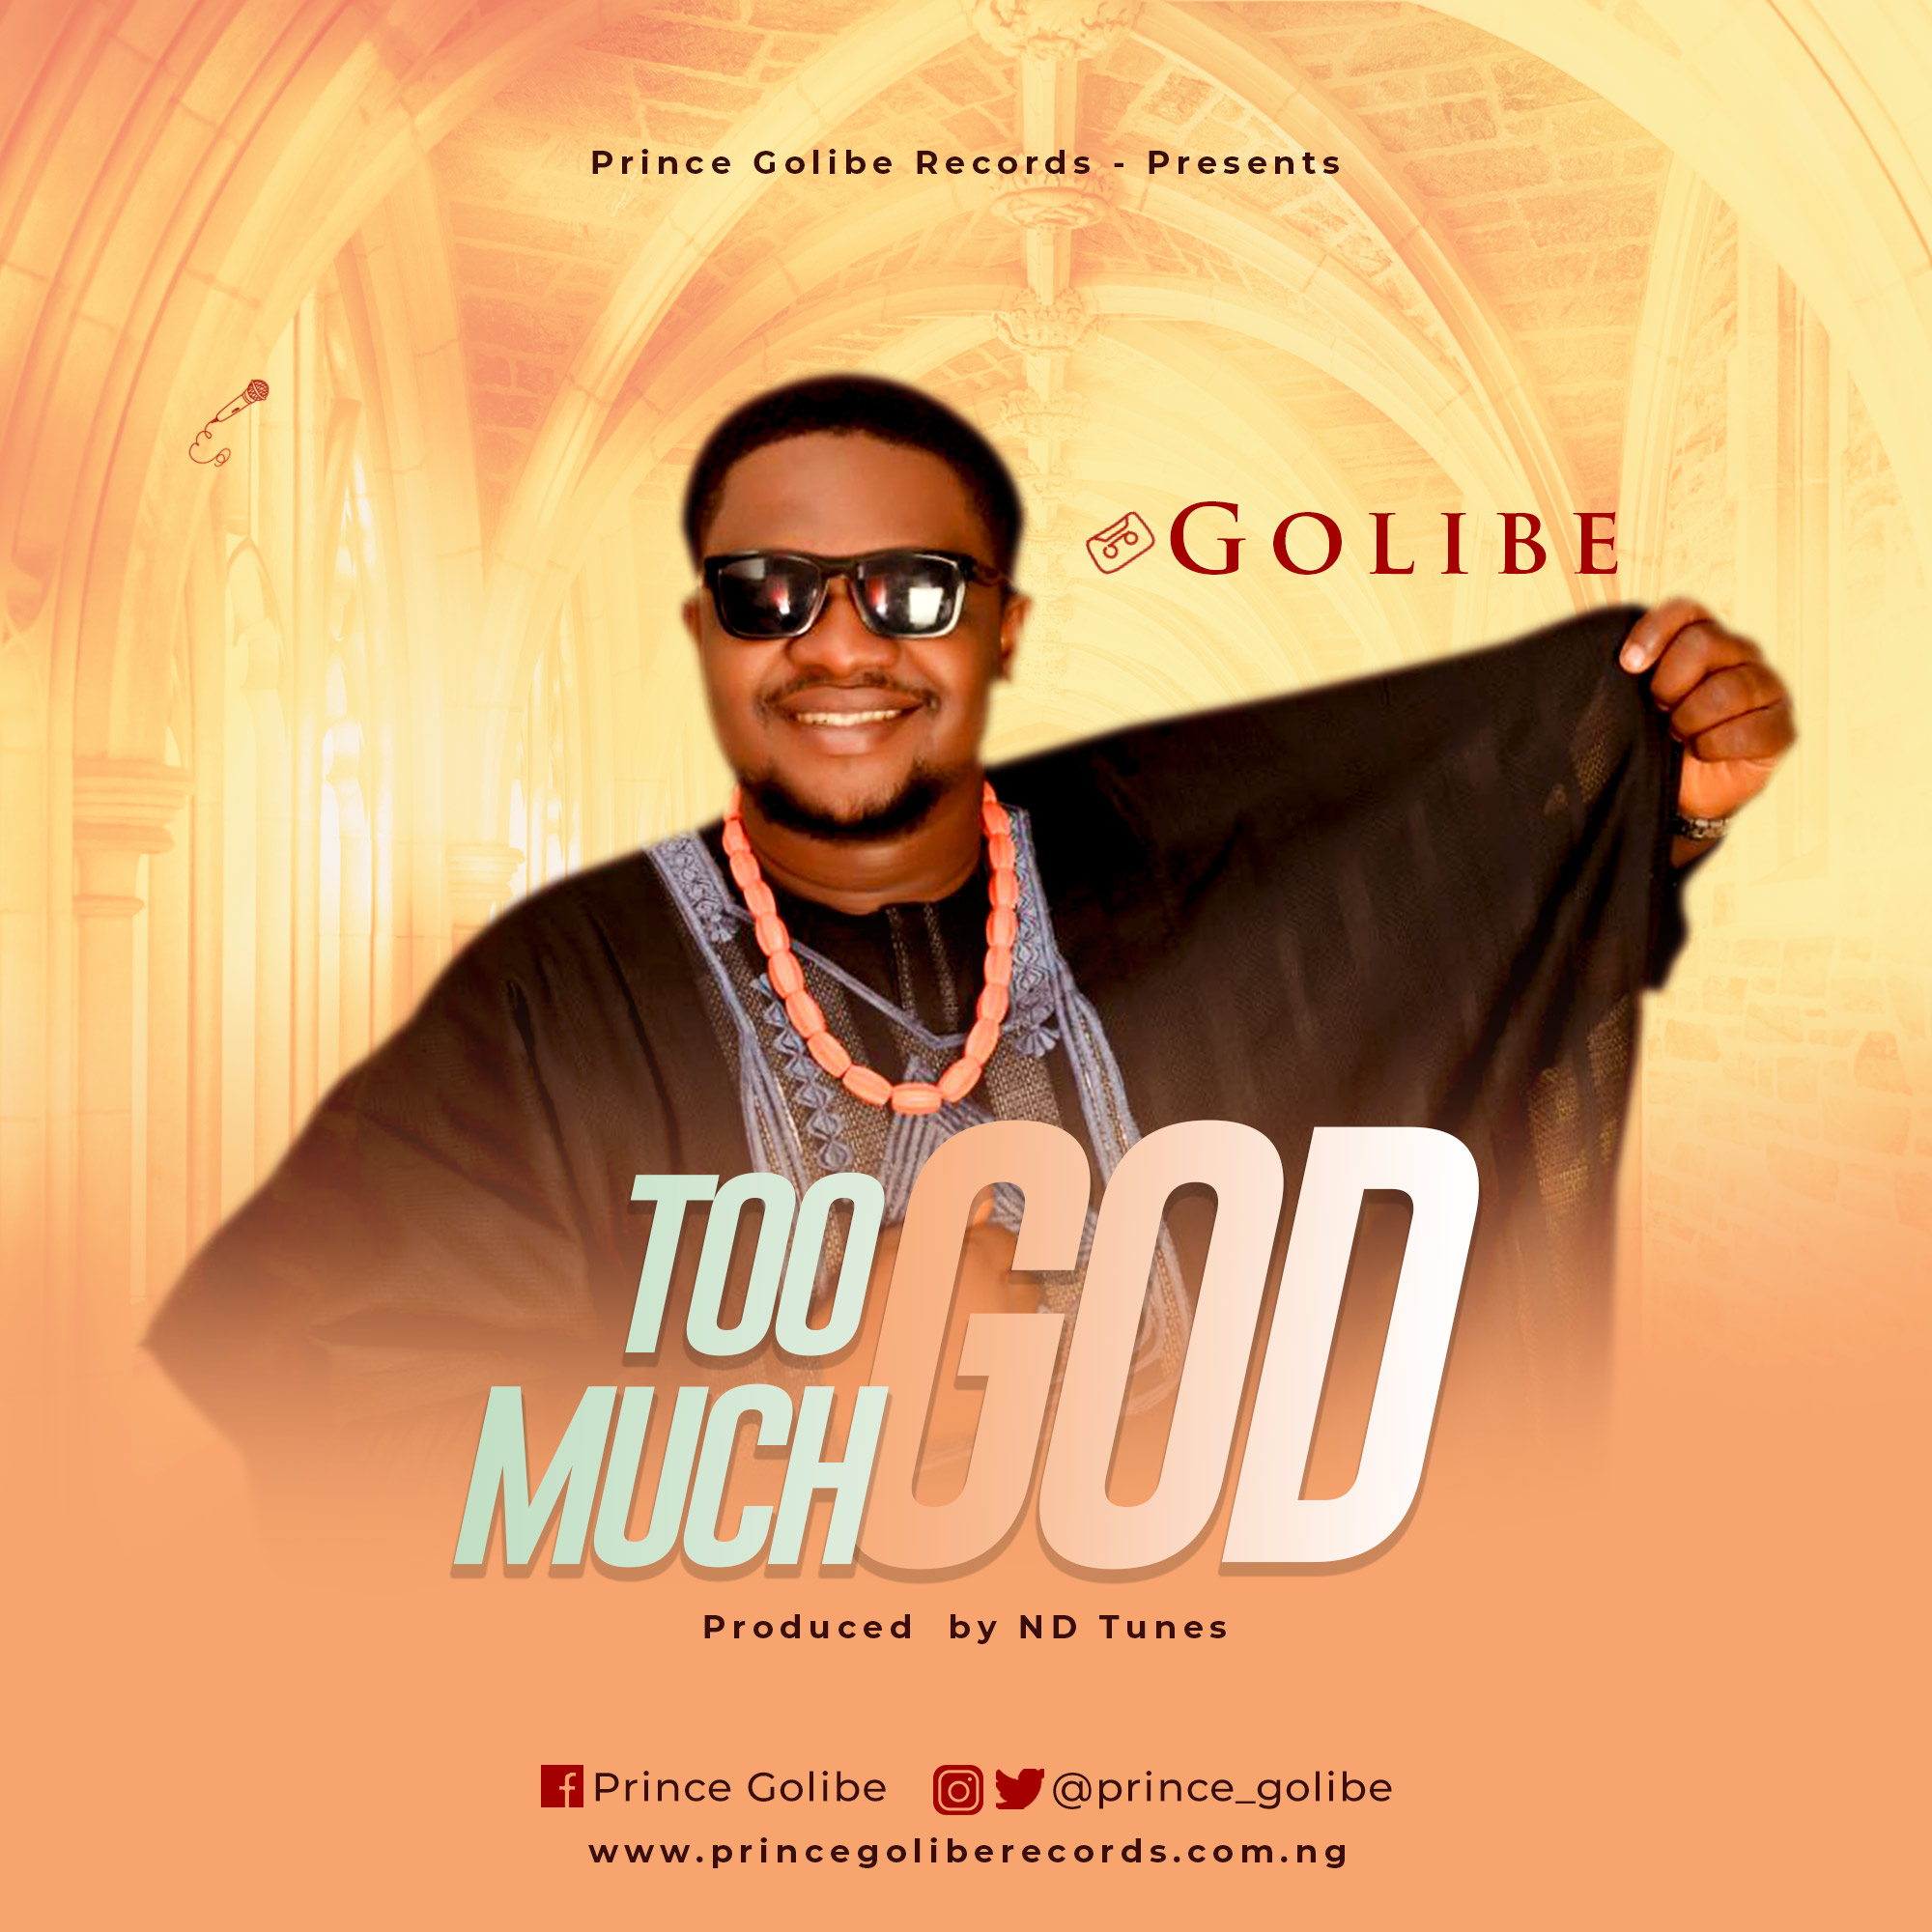 Golibe - Too Much God